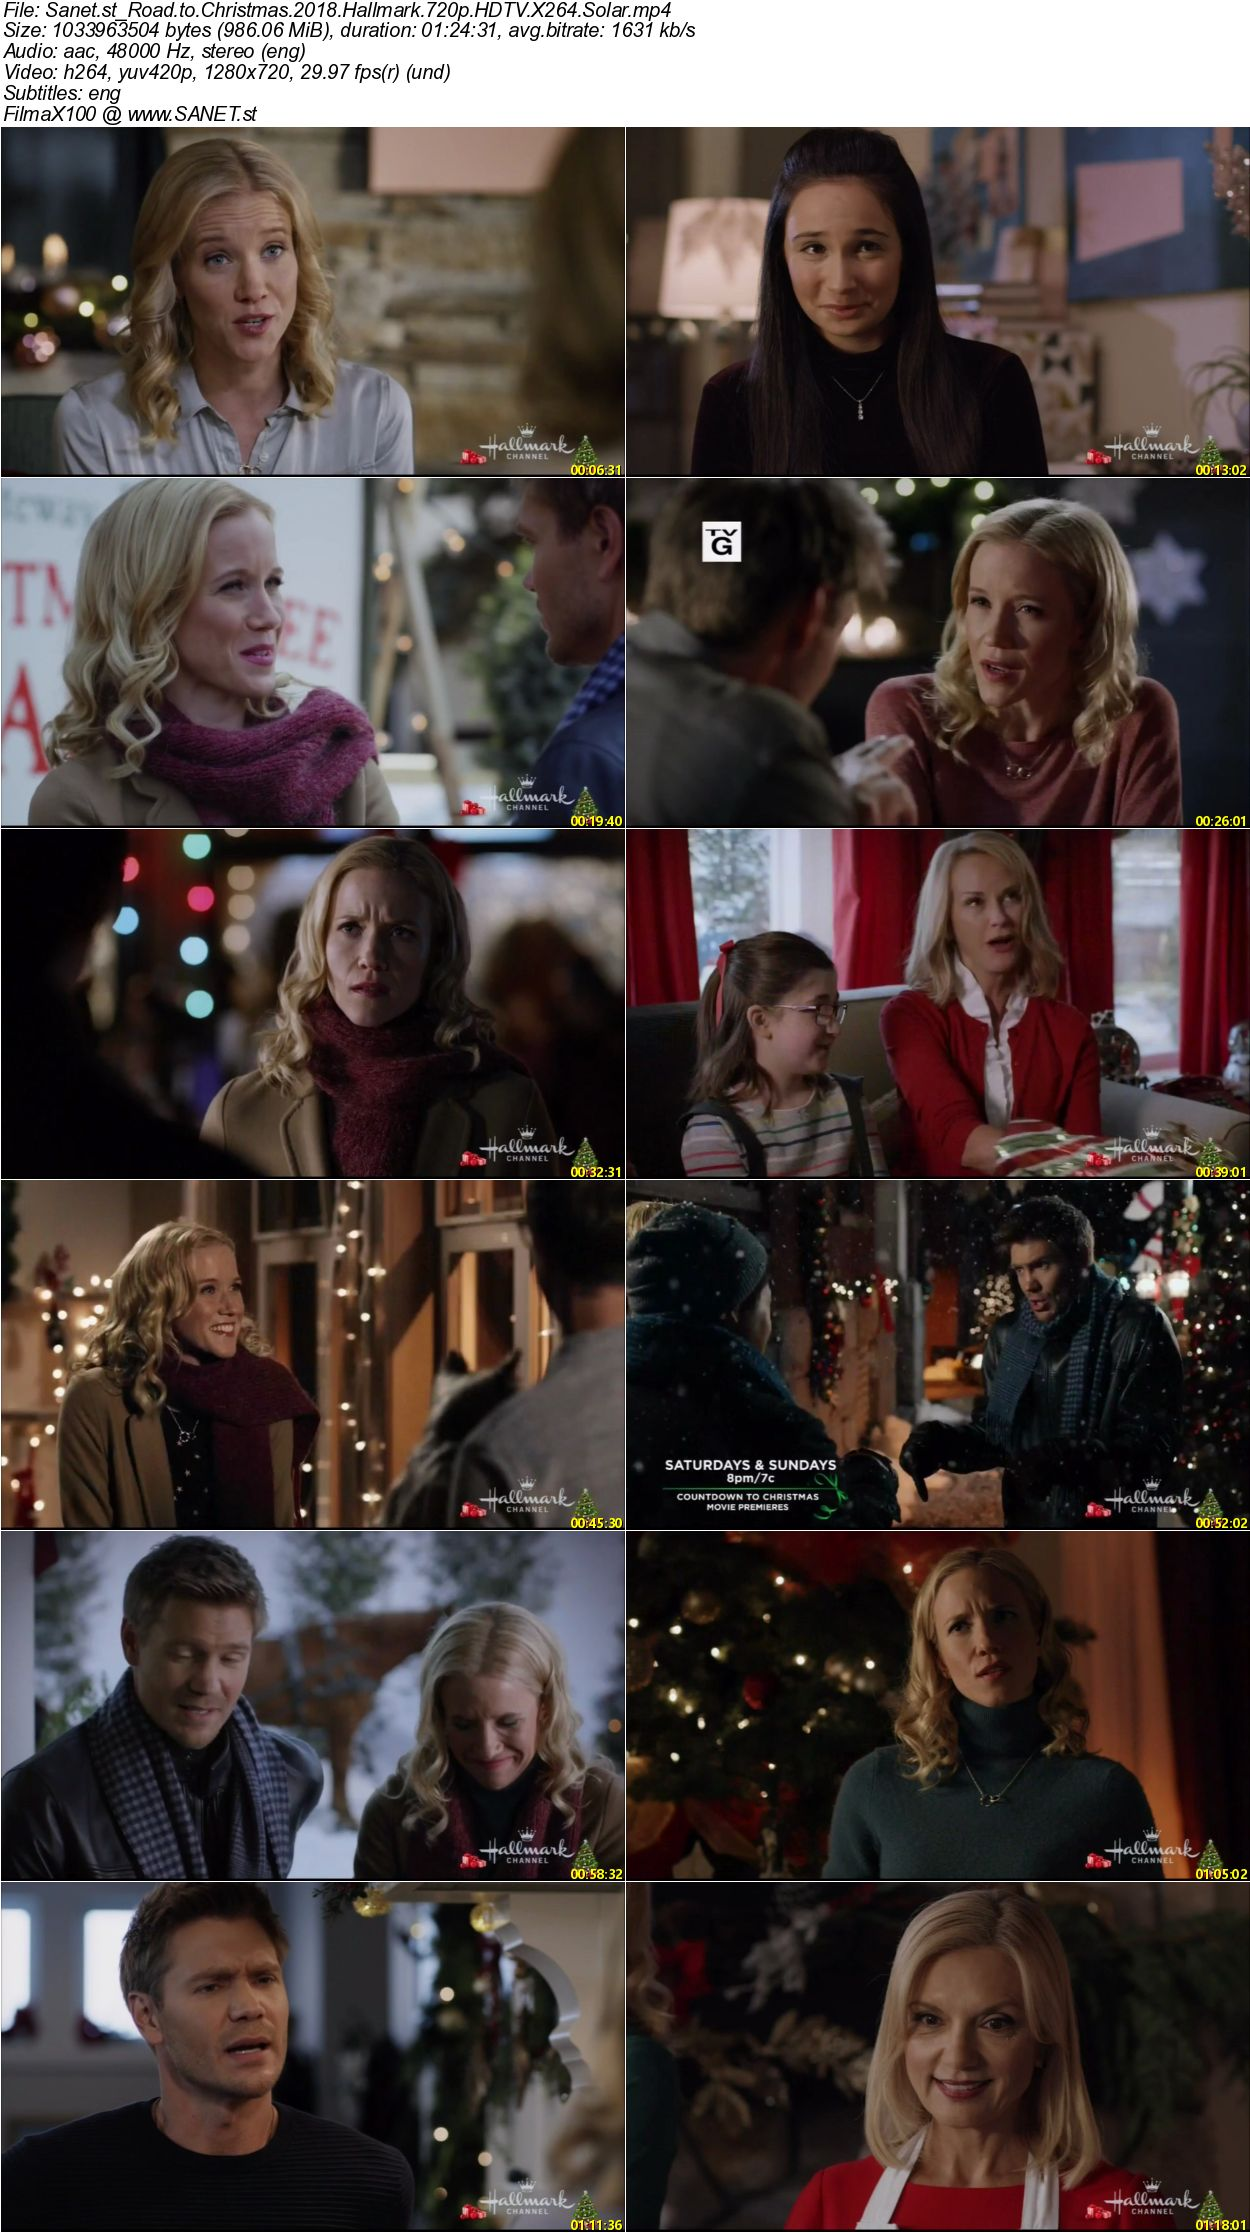 The Road To Christmas.Download Road To Christmas 2018 Hallmark 720p Hdtv X264